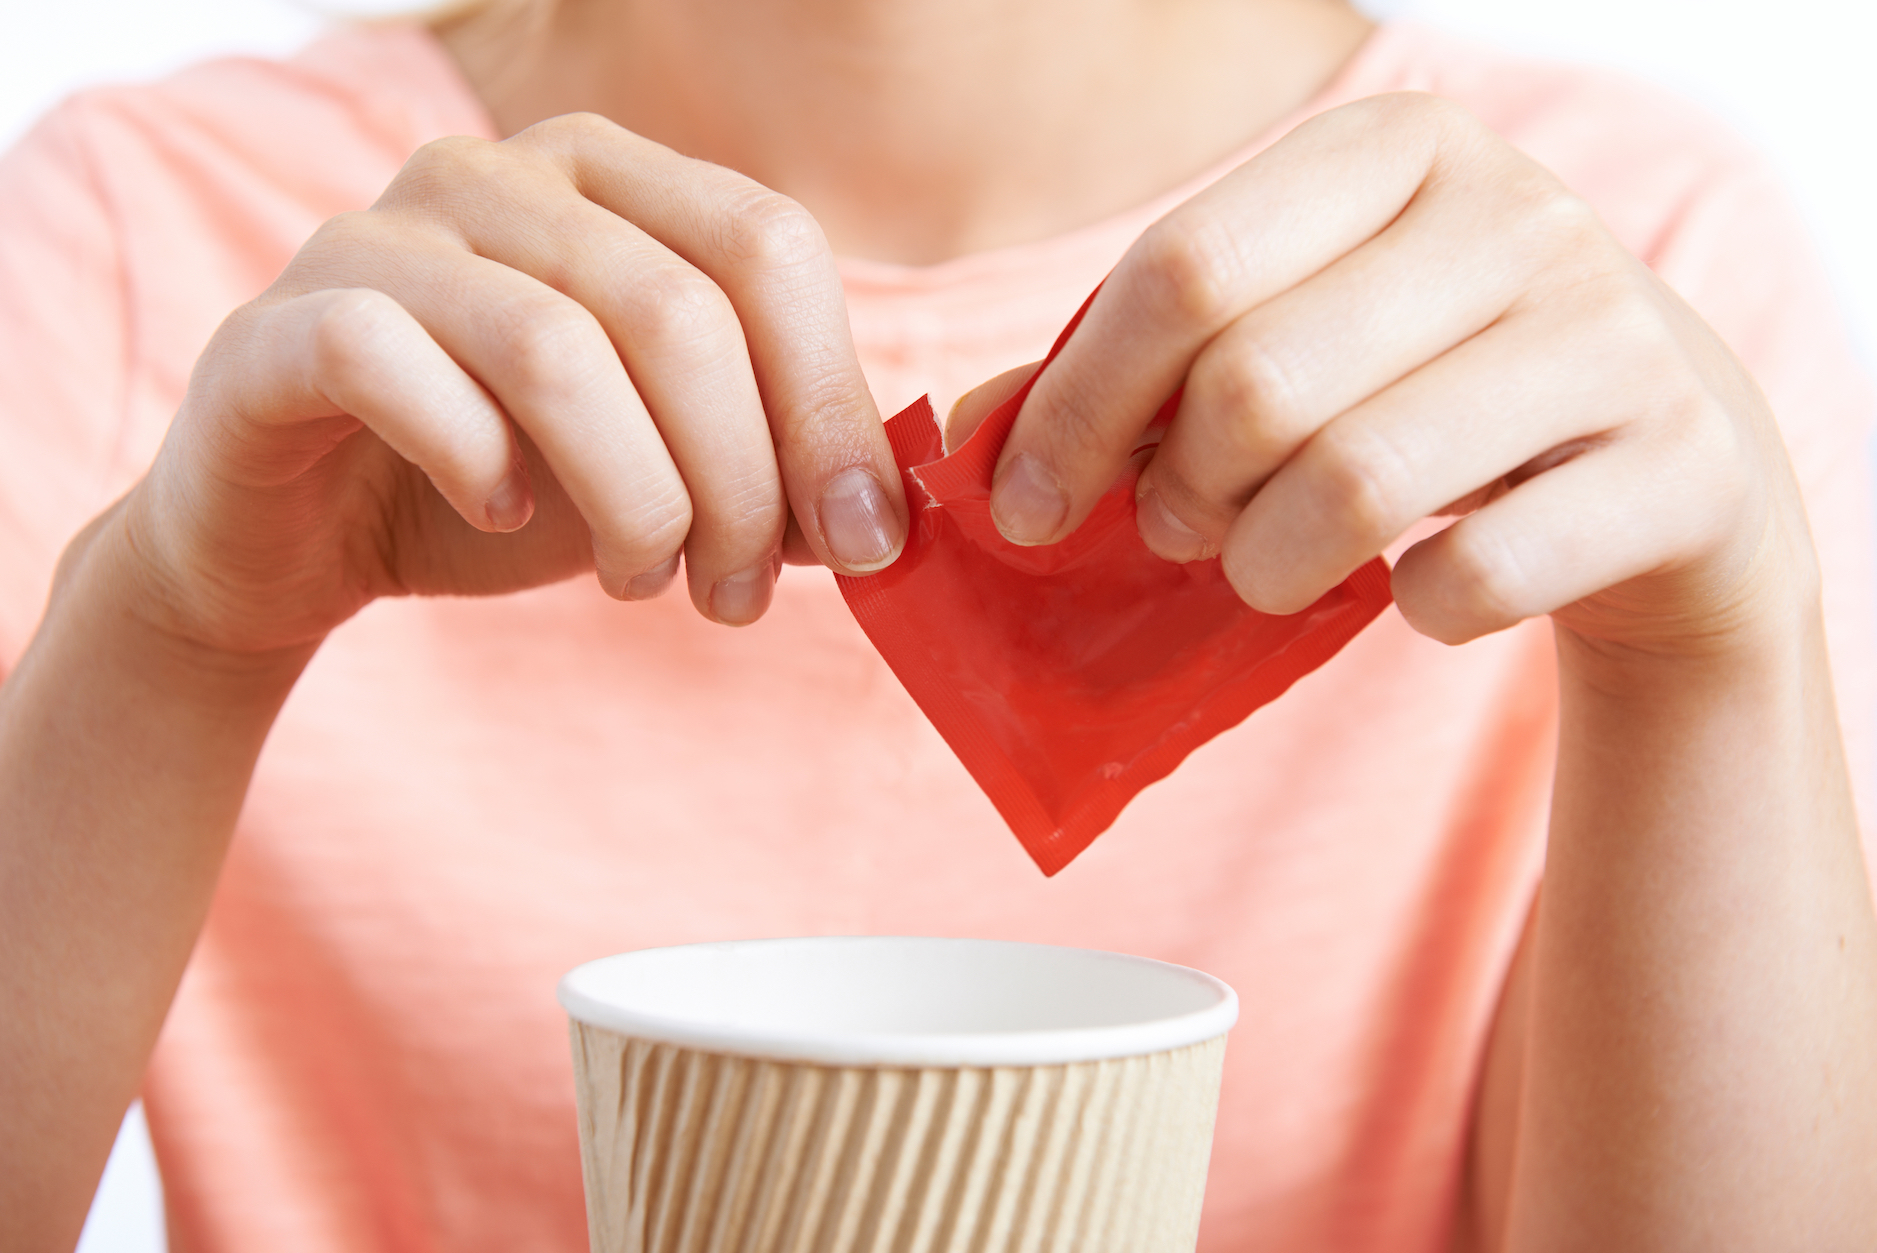 Consuming artificial sweeteners may be linked to obesity, diabetes, high blood pressure, and heart disease, according to a new study.